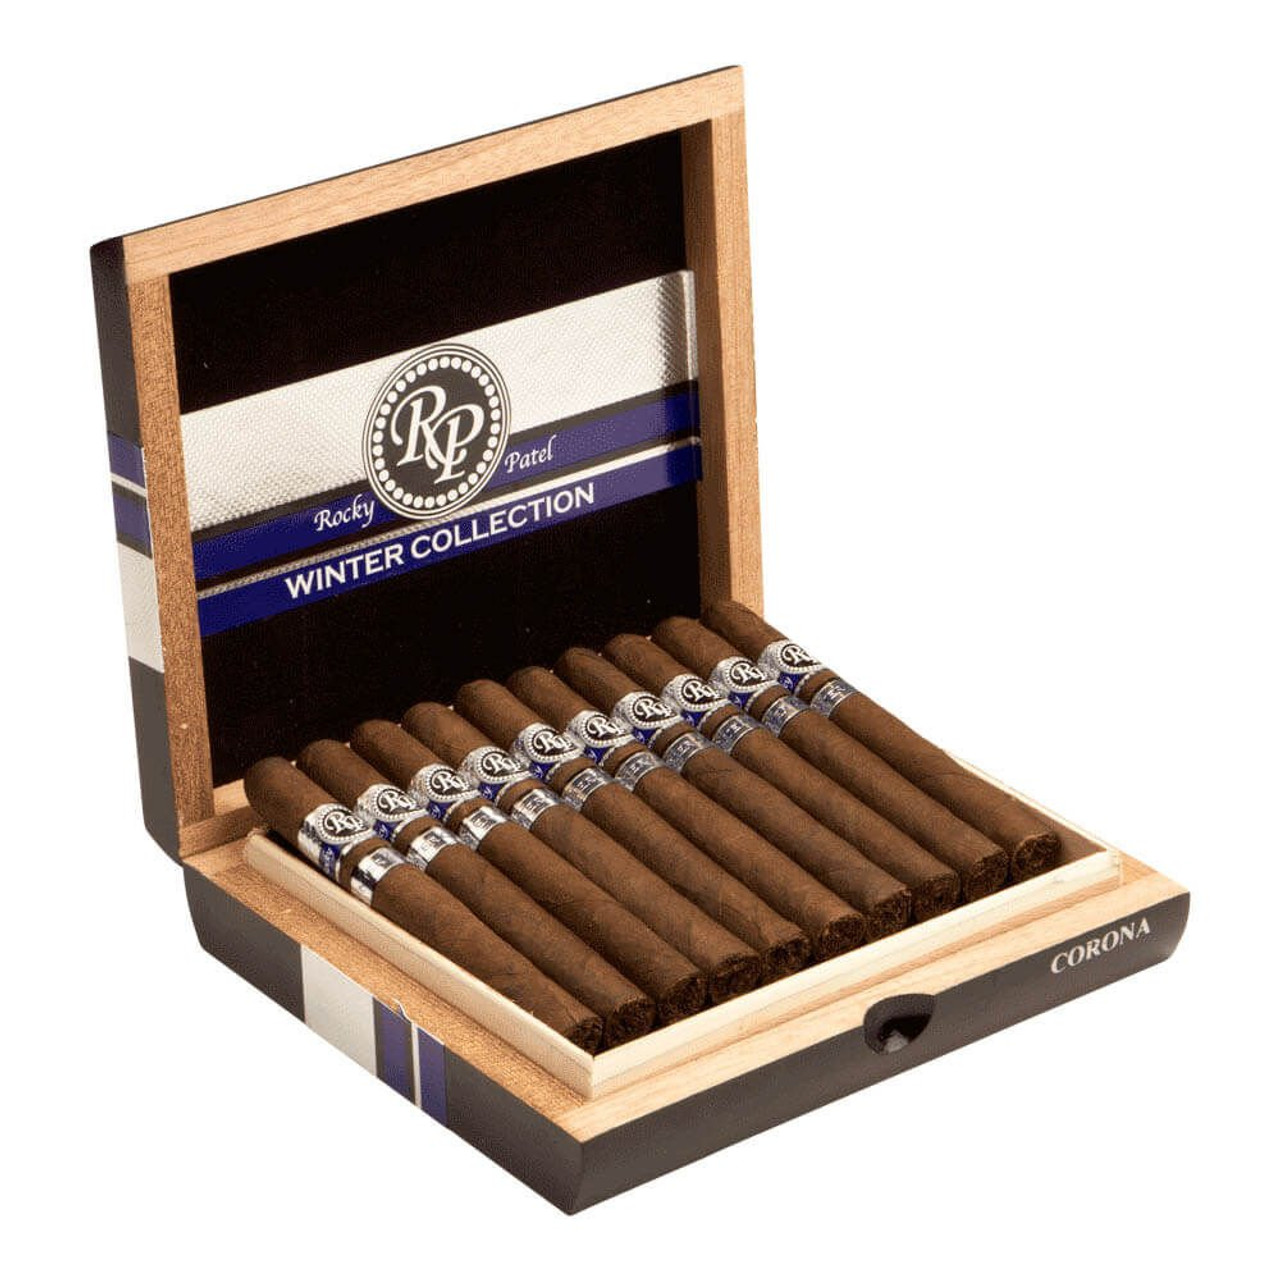 Rocky Patel Winter Collection Sixty Cigars - 6.0 x 60 (Box of 20)